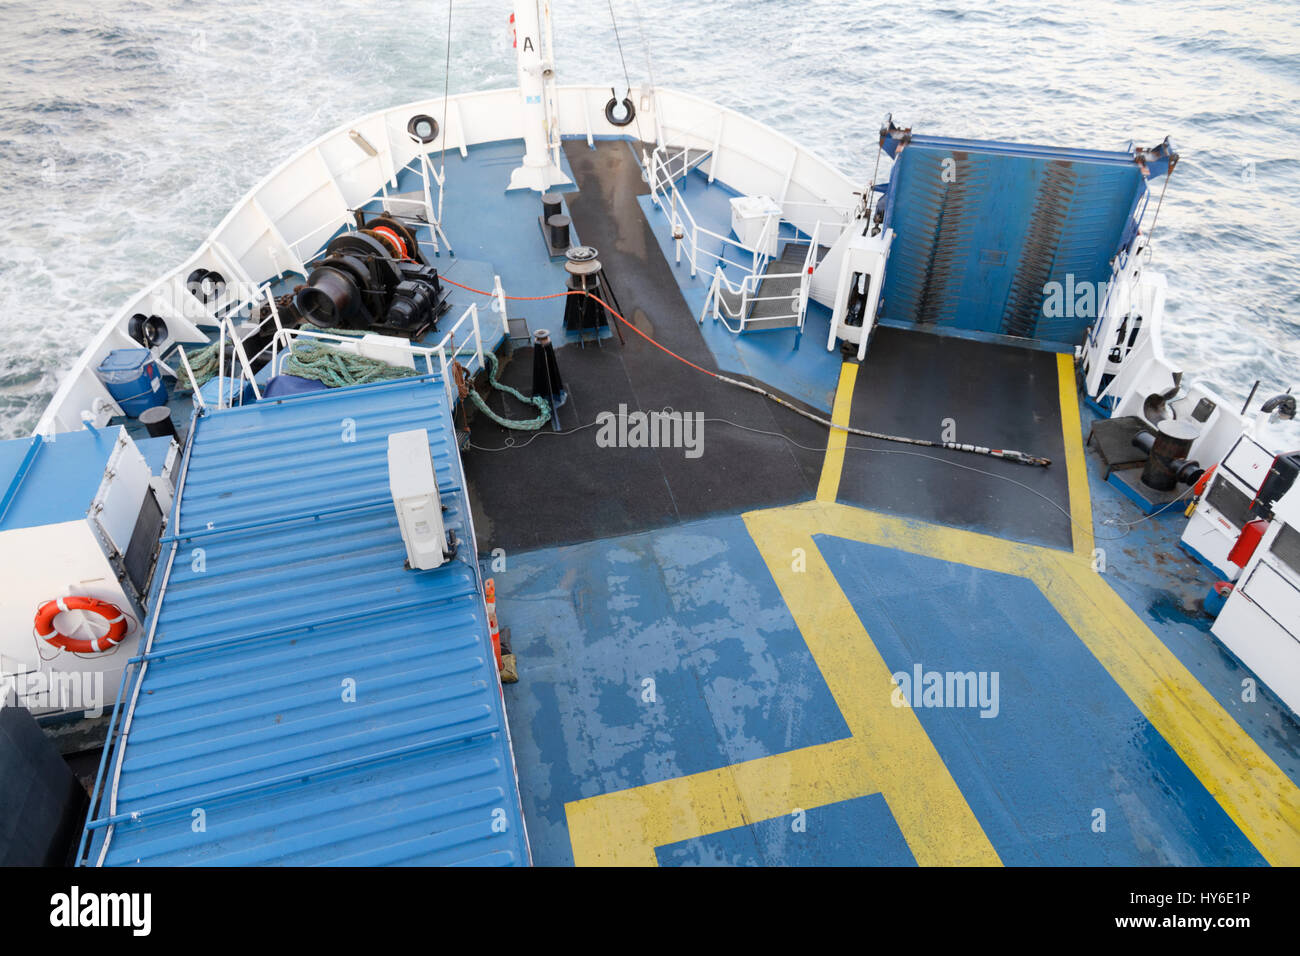 Ferry between Helsingborg, Sweden, and Helsingør, Denmark - Stock Image